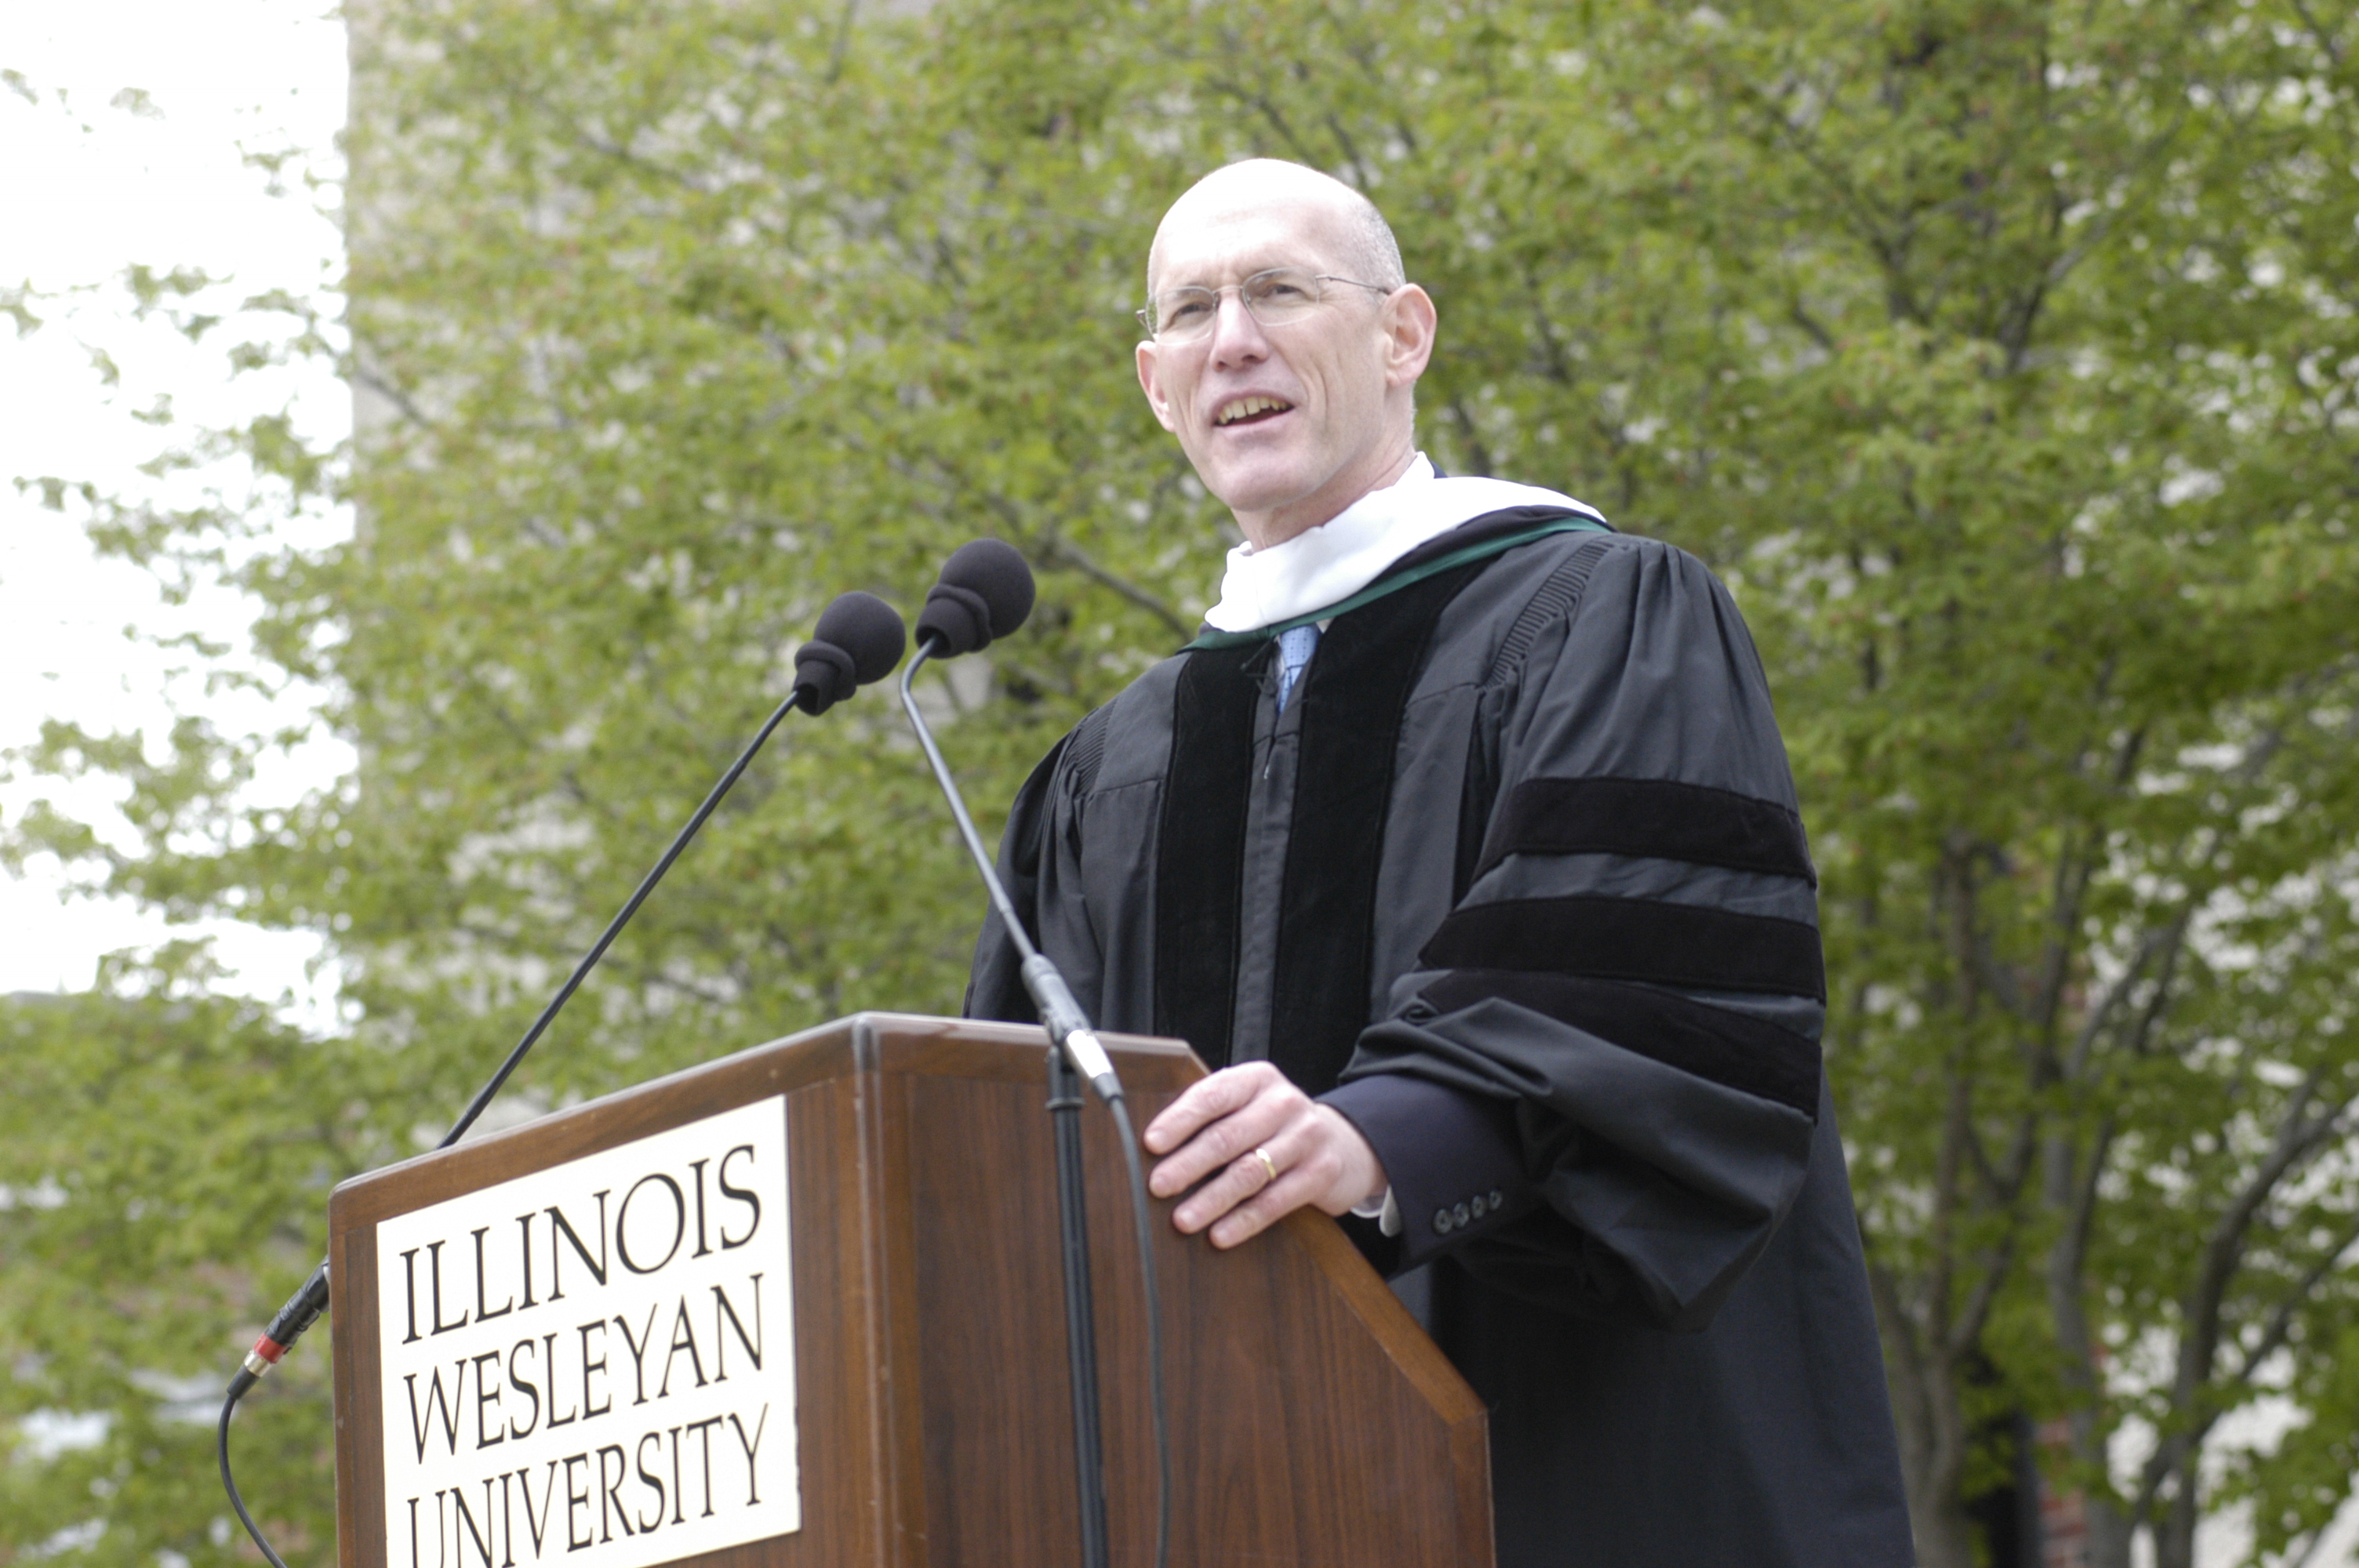 Poland provided the keynote address at Illinois Wesleyan's Commencement ceremony in 2005.